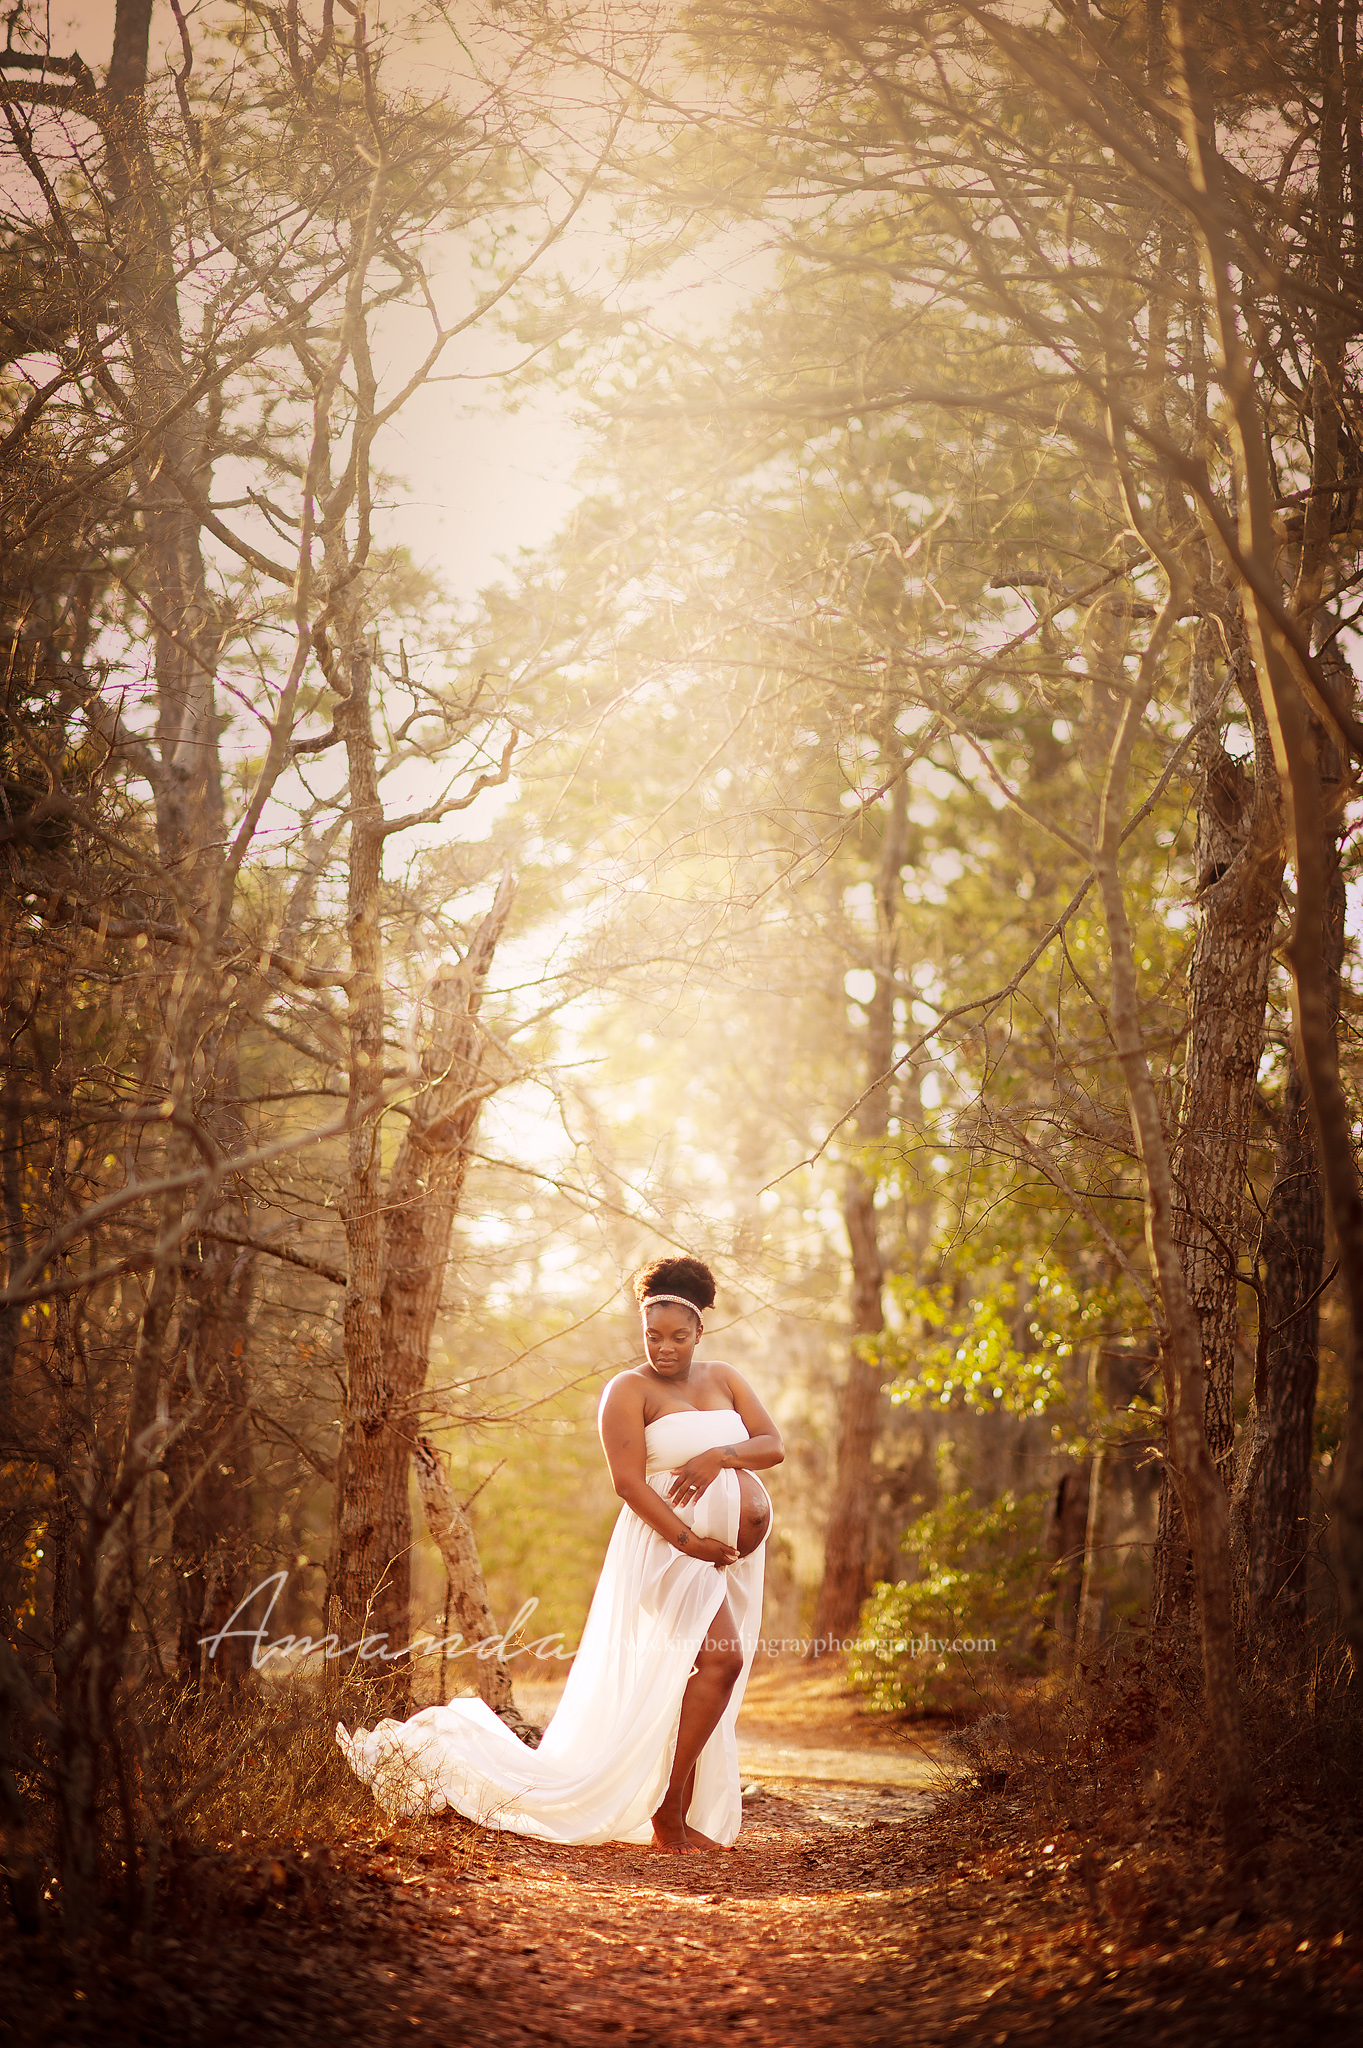 beautiful maternity gown portrait in the woods